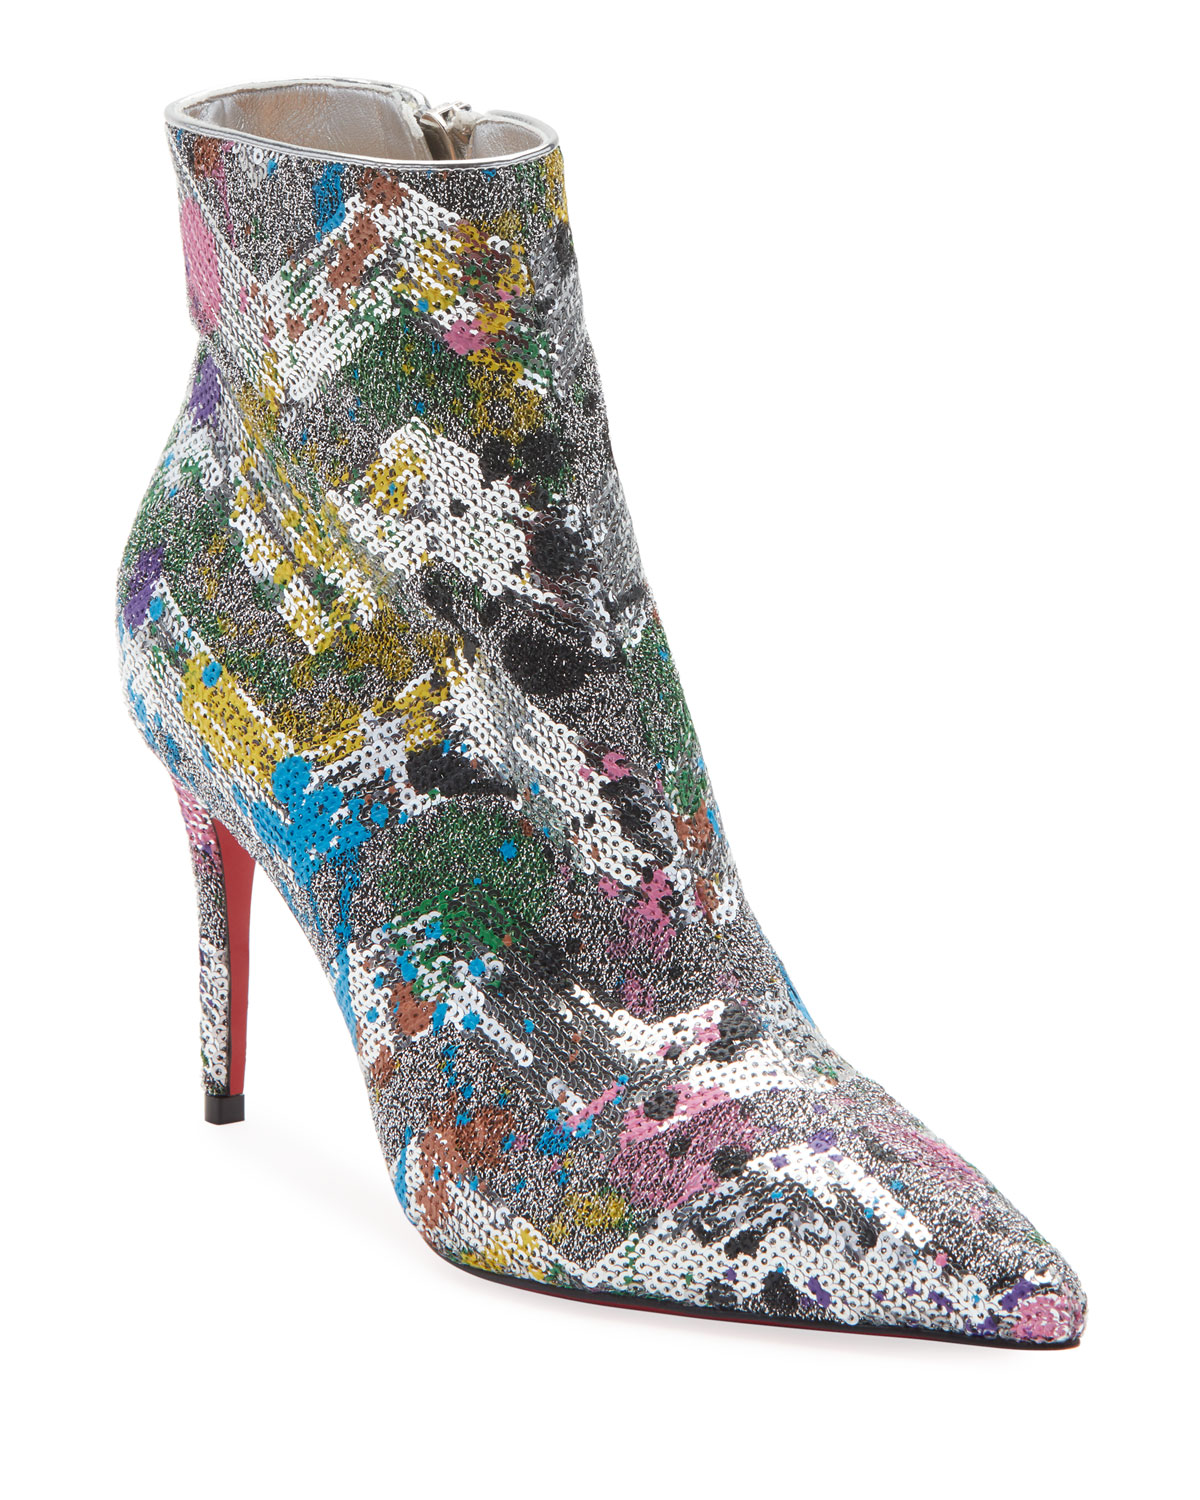 Christian Louboutin Boots SO KATE GLITTER RED SOLE BOOTIES